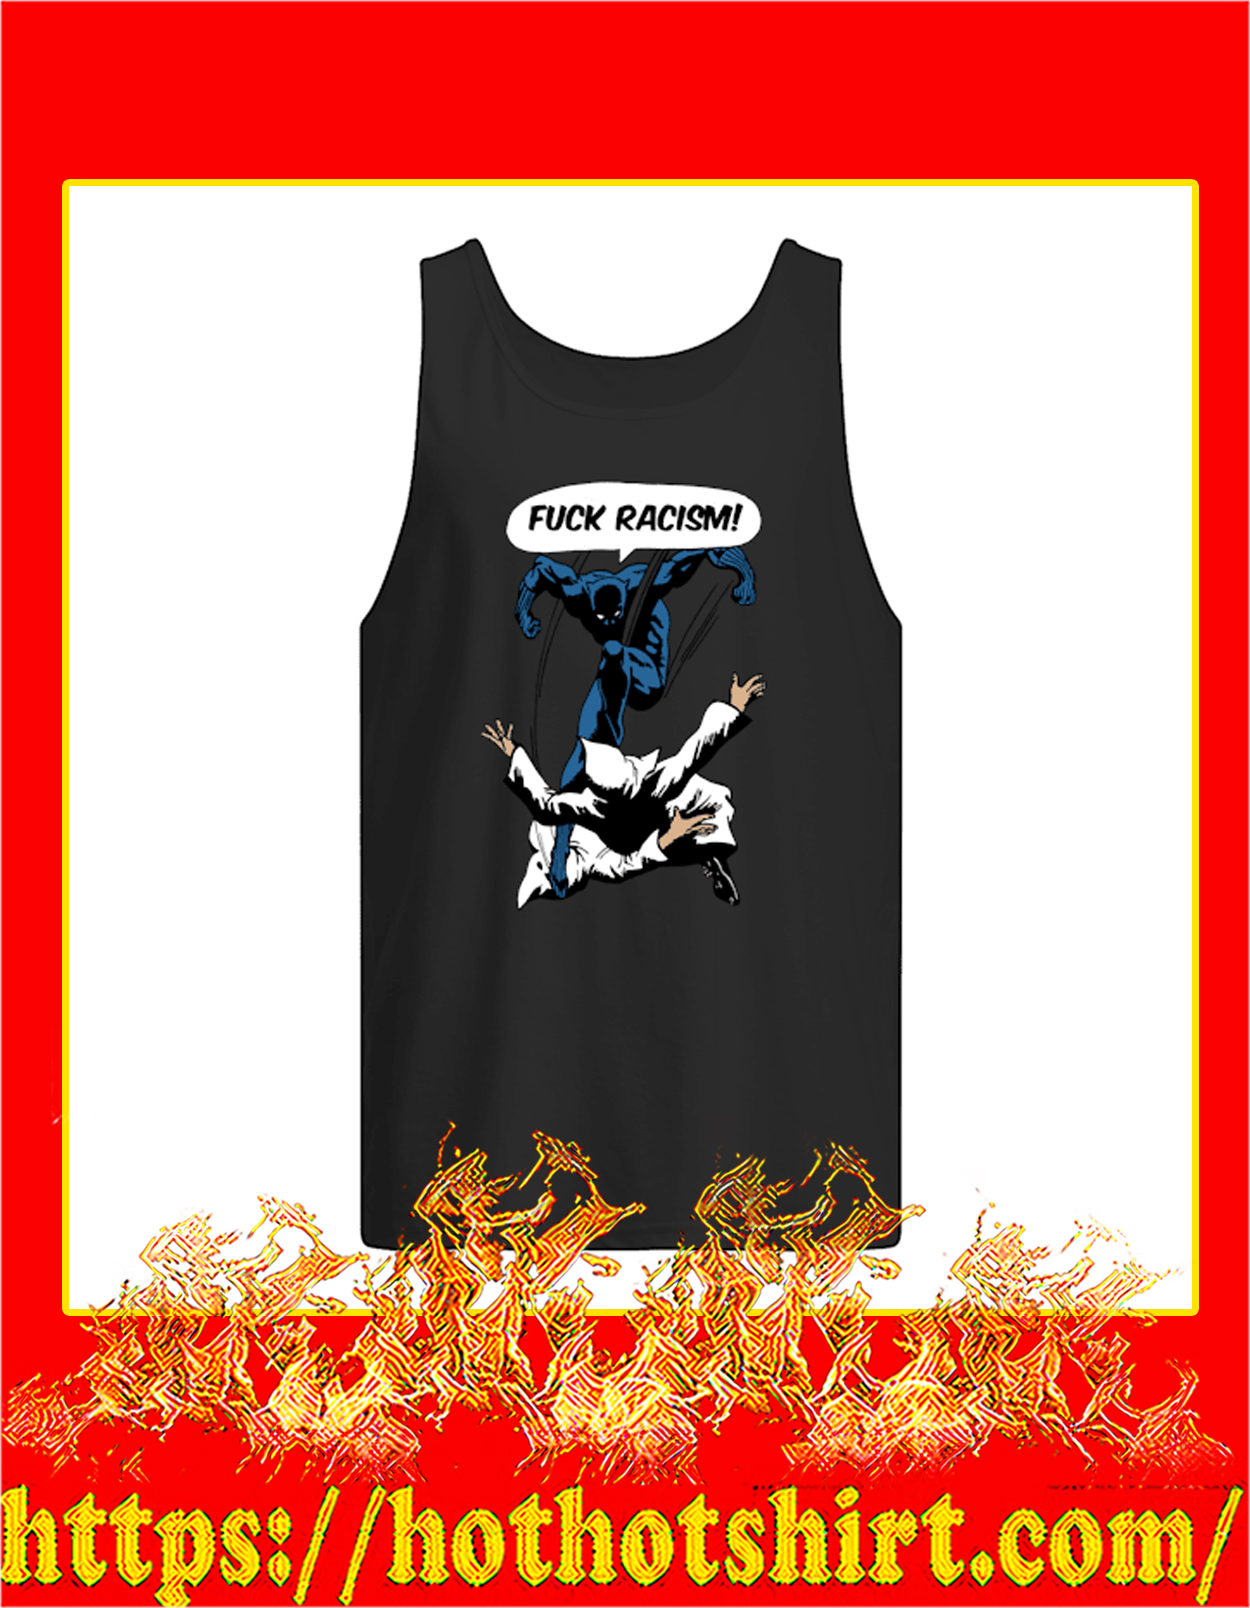 Black panther fuck racism tank top